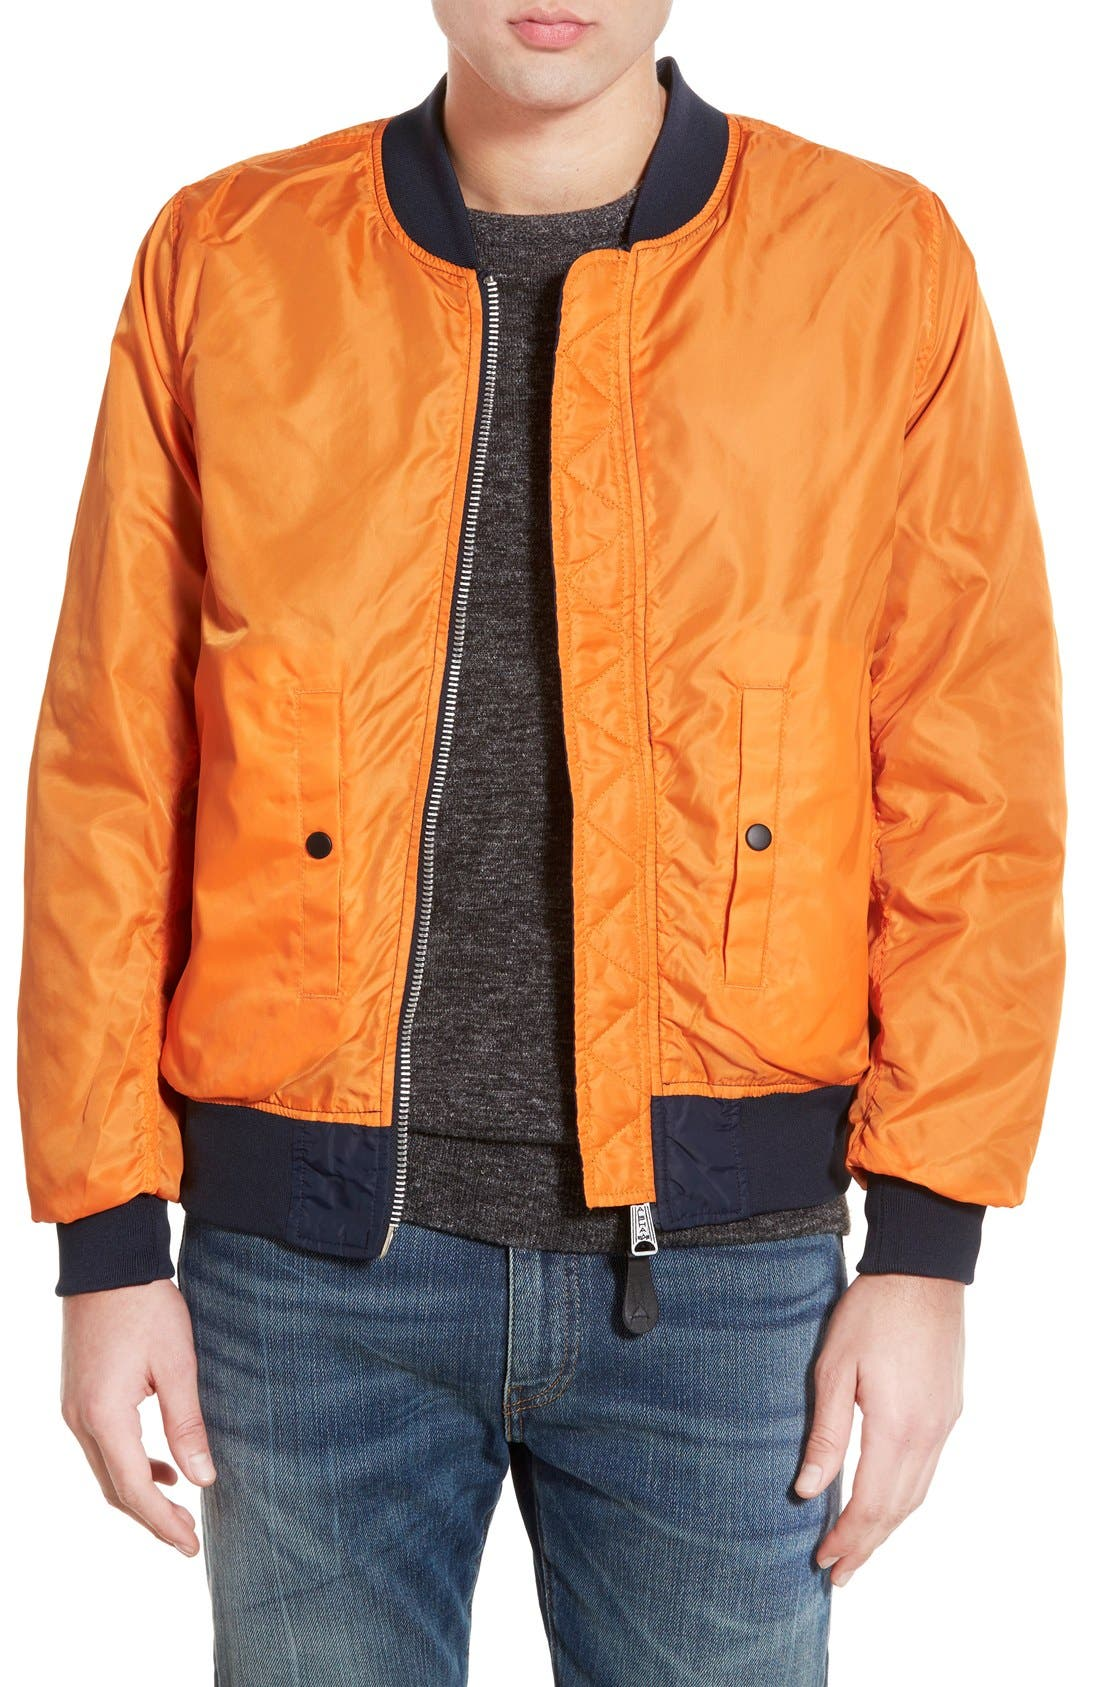 LB-2 Scout Reversible Flight Jacket,                             Alternate thumbnail 23, color,